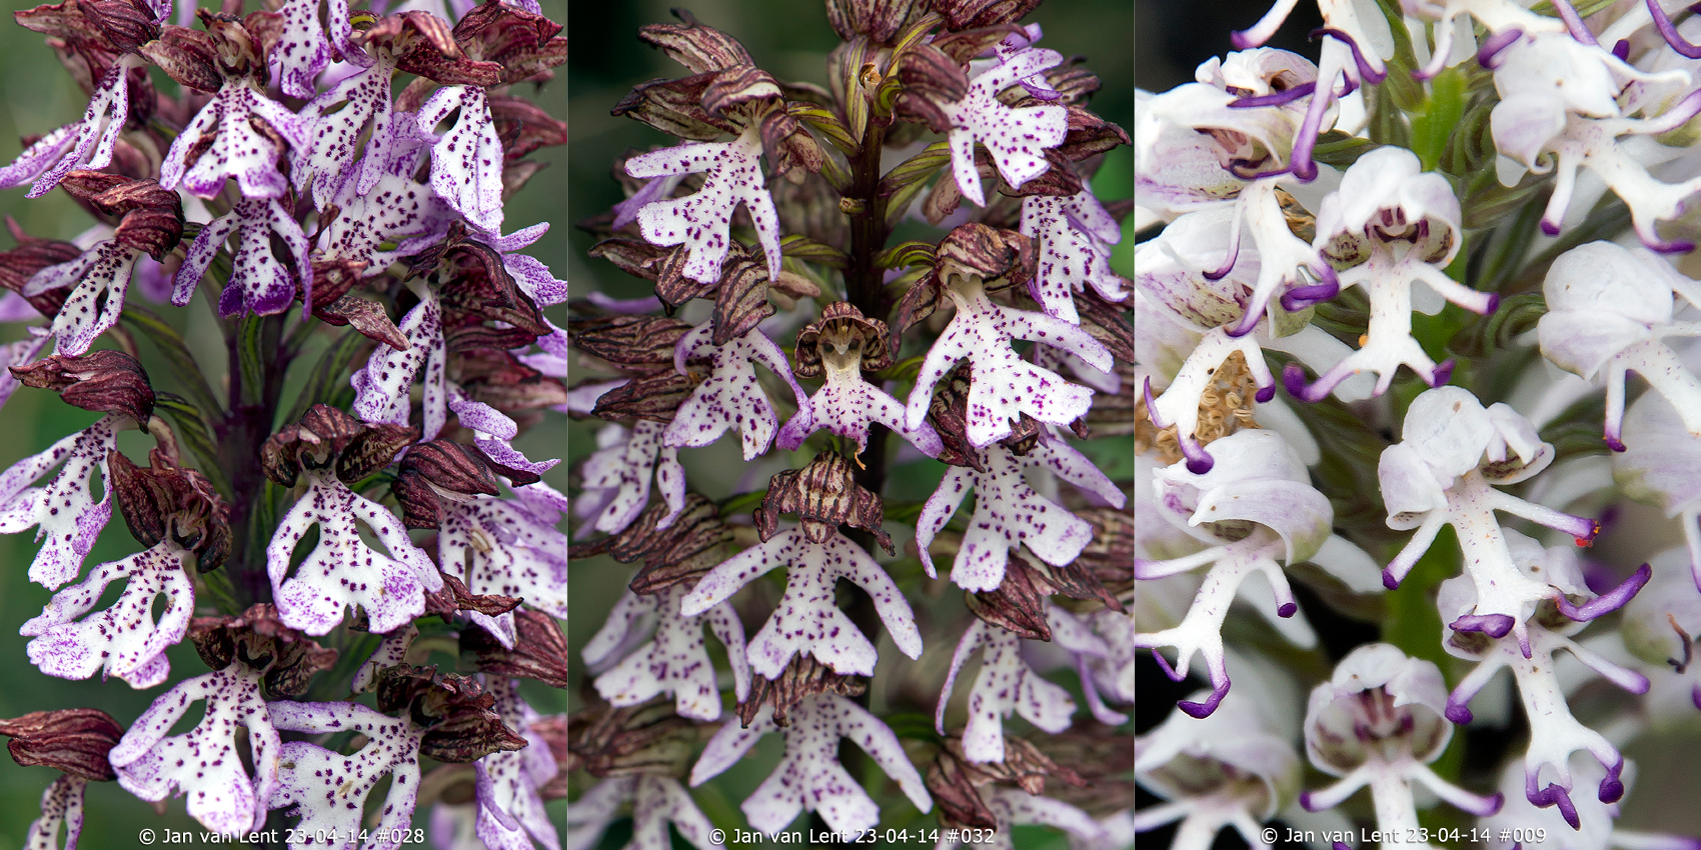 2 Orchis purpurea & 1 Orchis simia, Mt. Fouga, © Jan van Lent 23-04-14